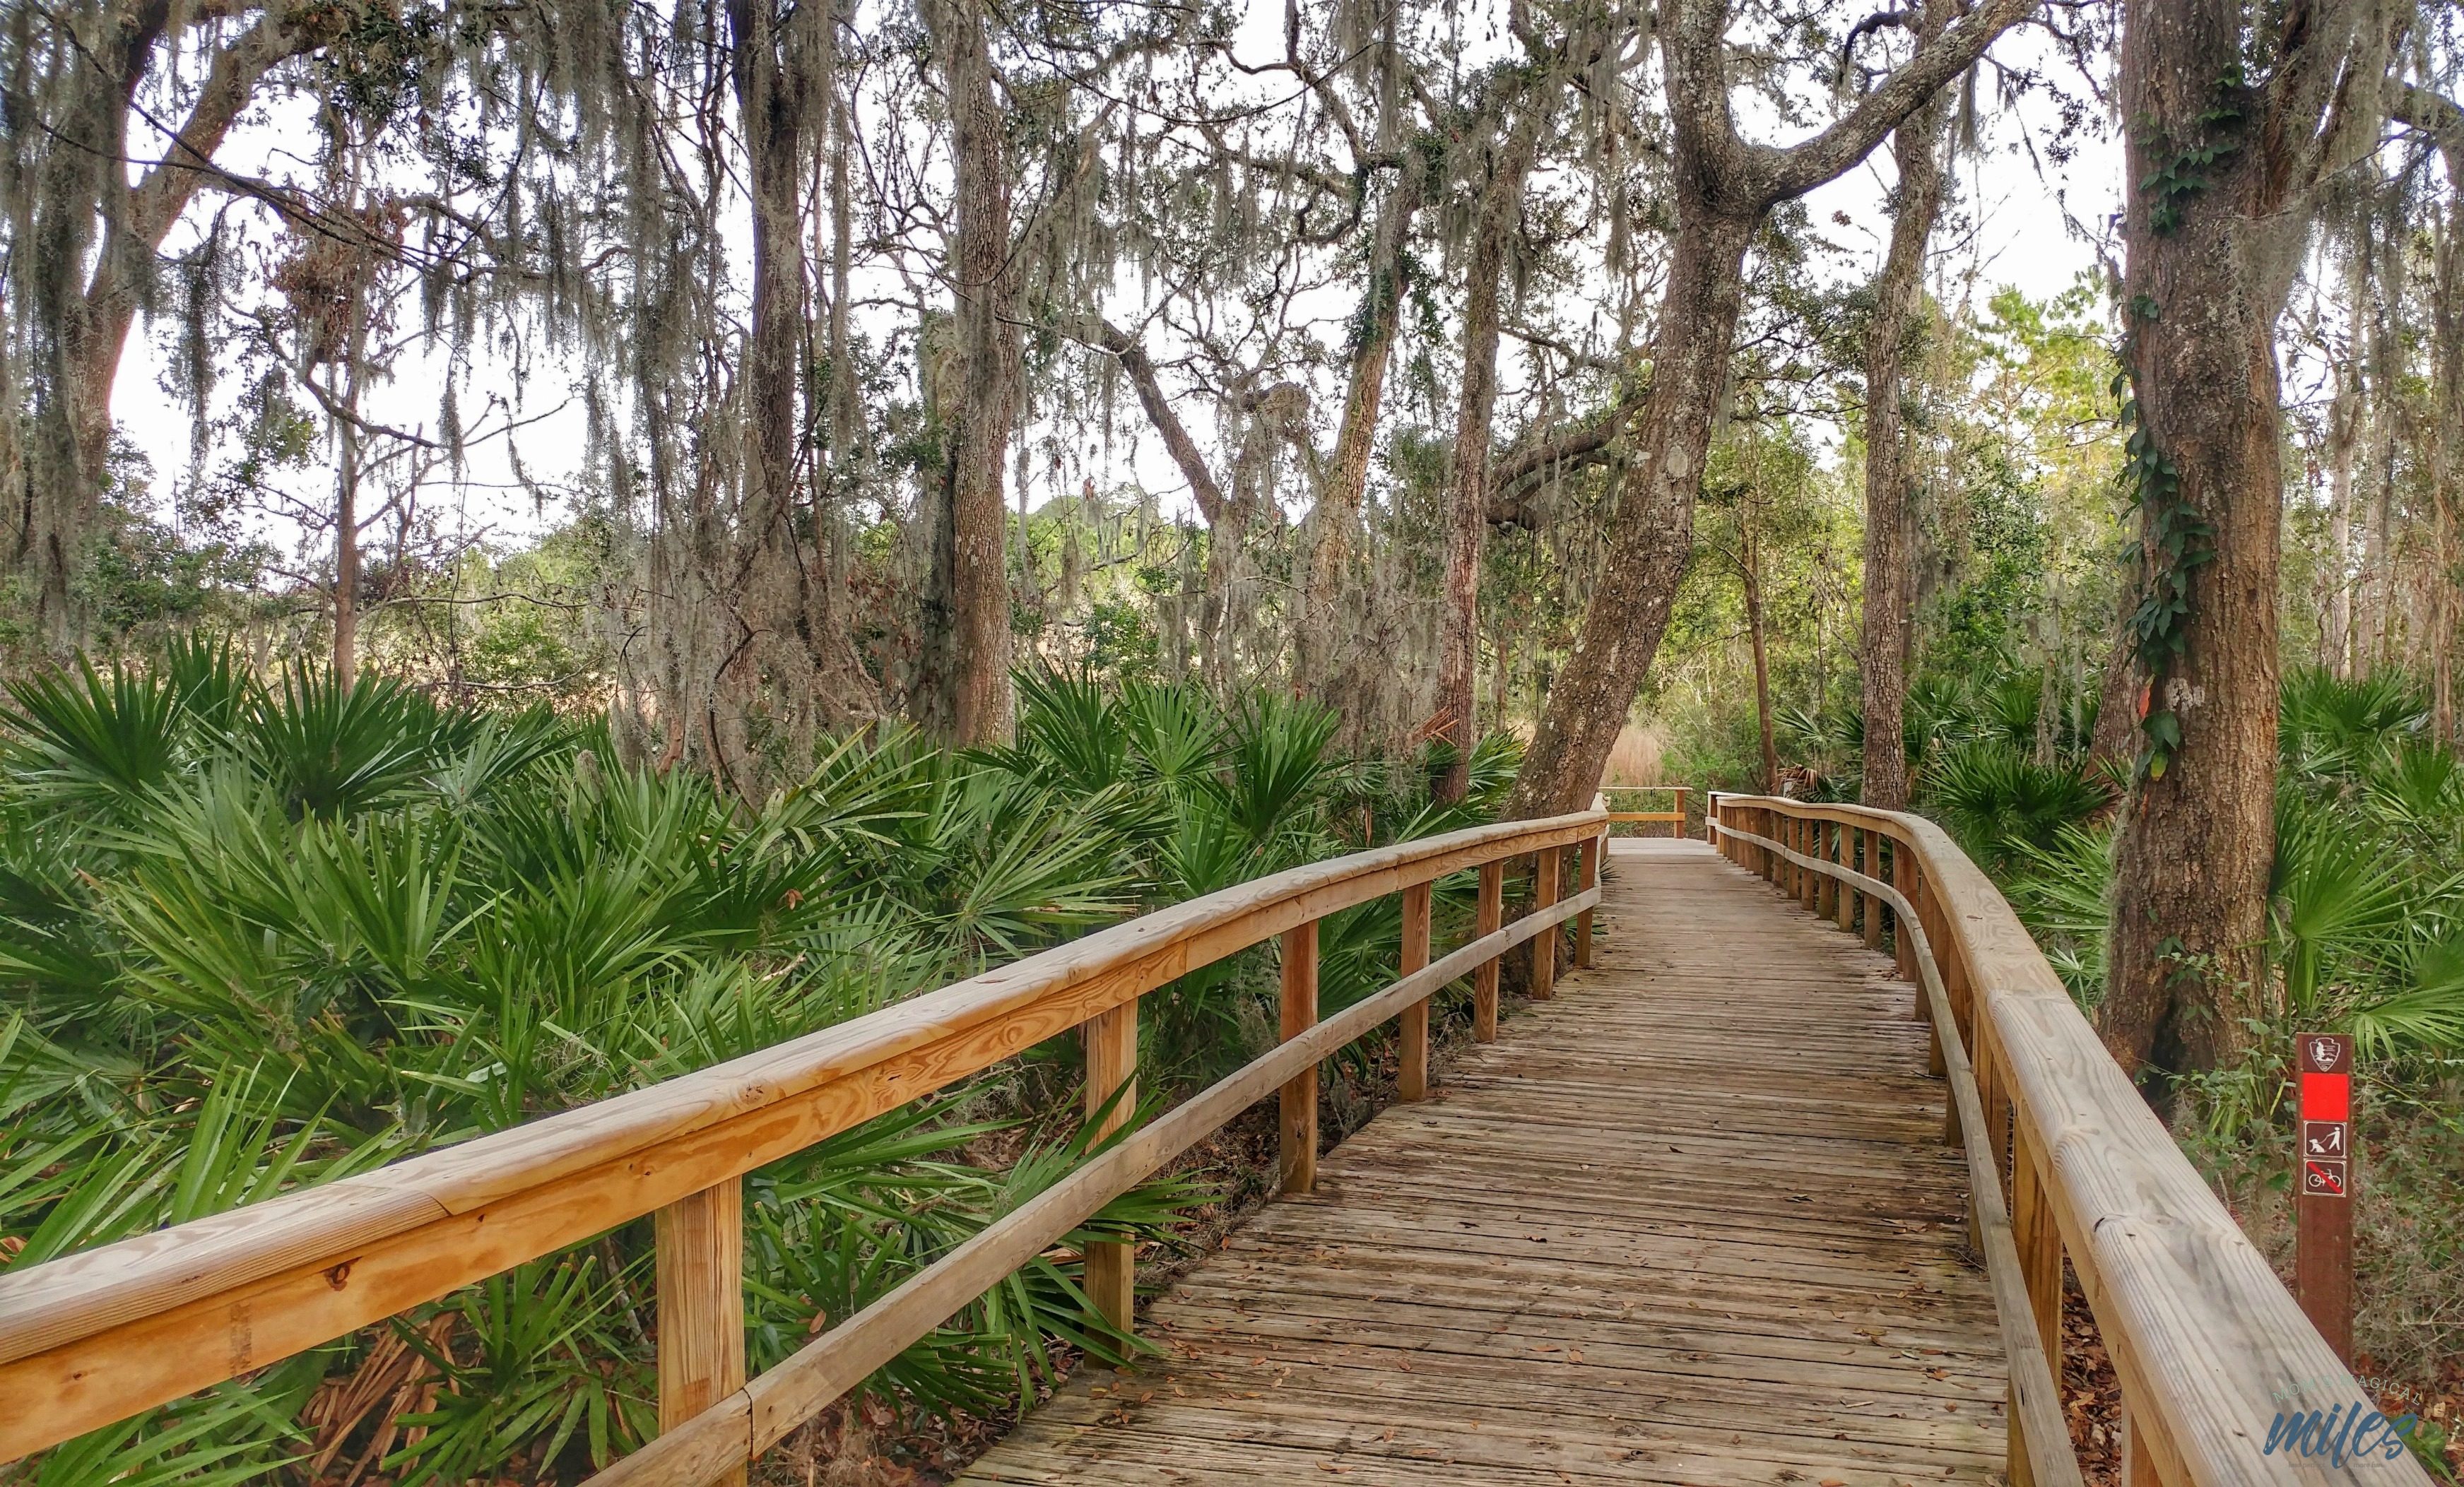 The hiking trails at the Timucuan Preserve Theodore Roosevelt area are easy hikes for the family. Jacksonville, FLorida